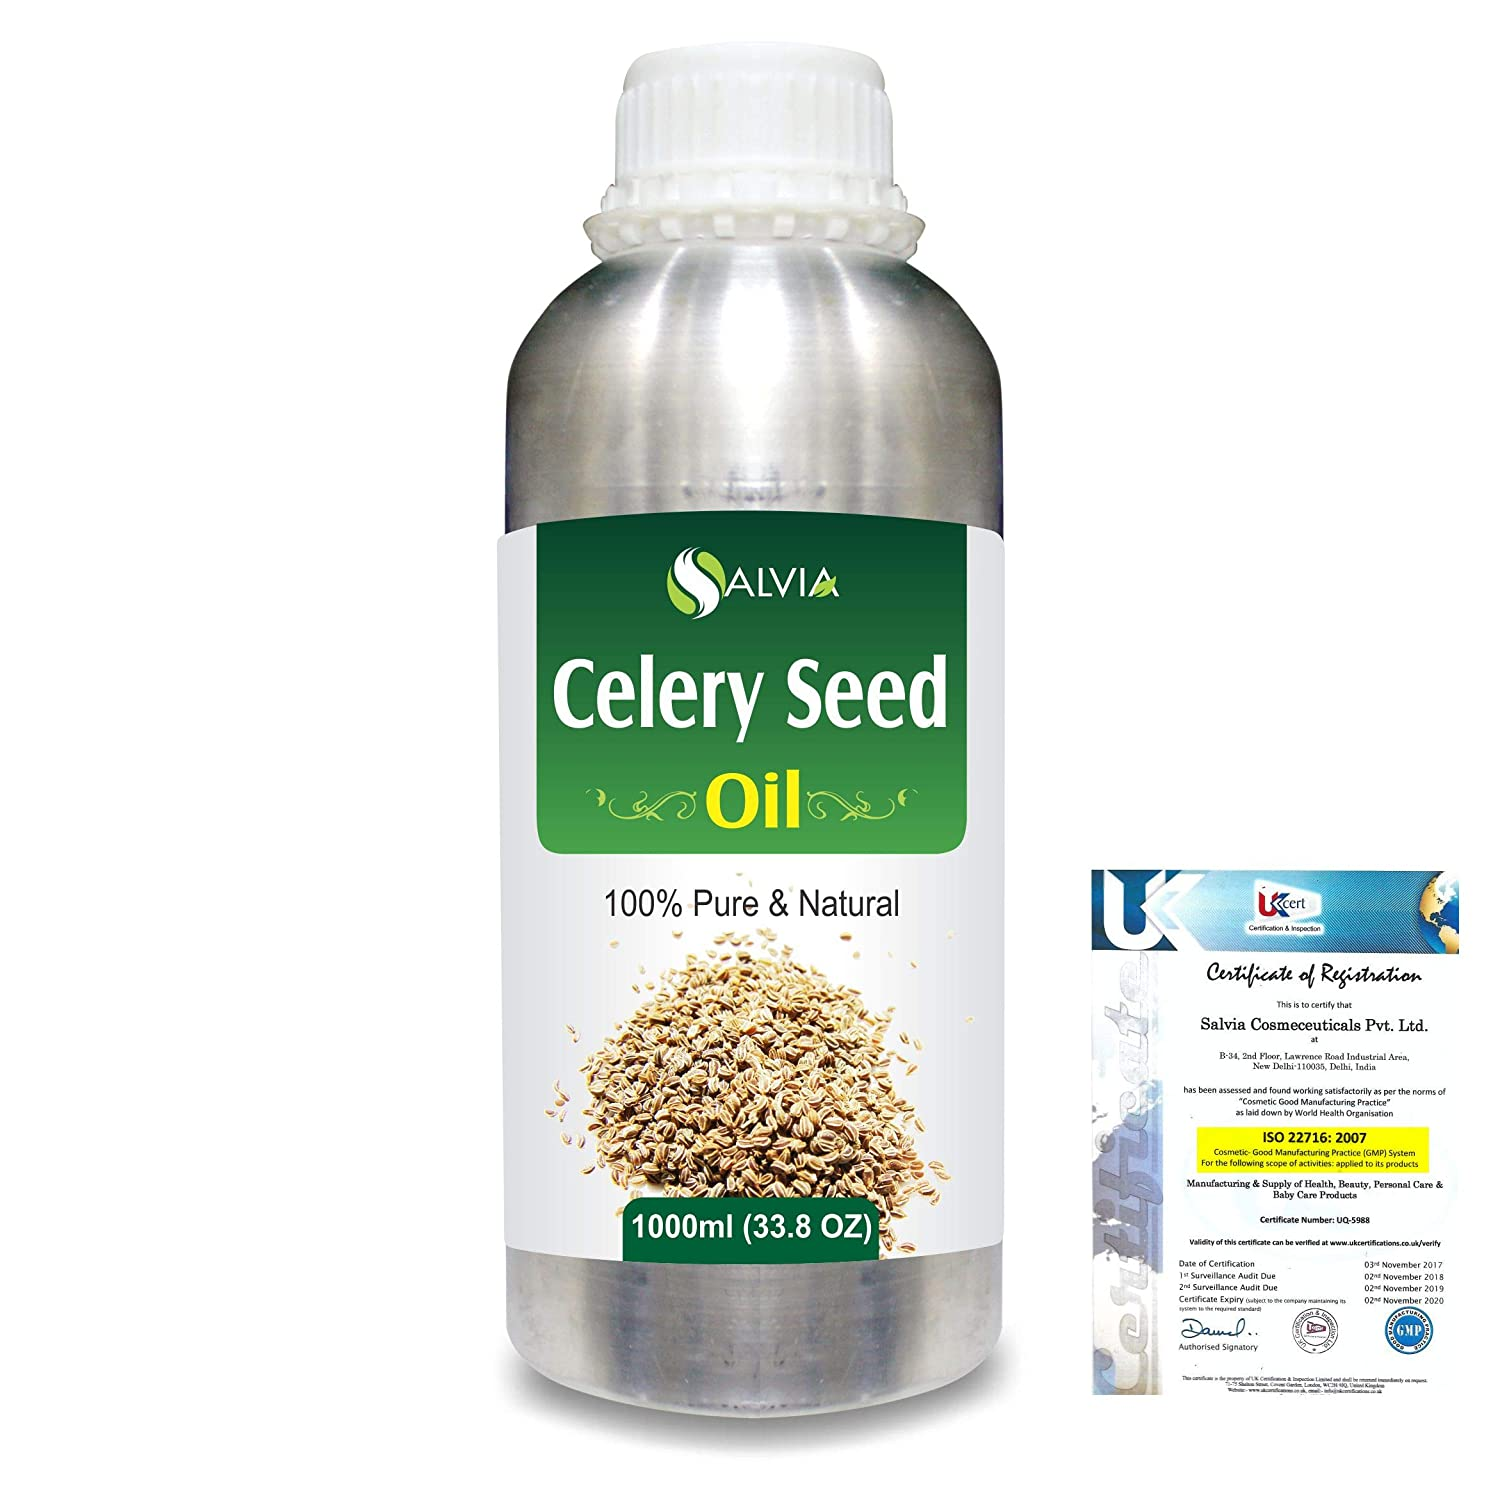 Celery Seed (Apium Graveolens) 100% Pure Natural Carrier Oil 1000ml/33.8fl.oz. B07R84JH6P